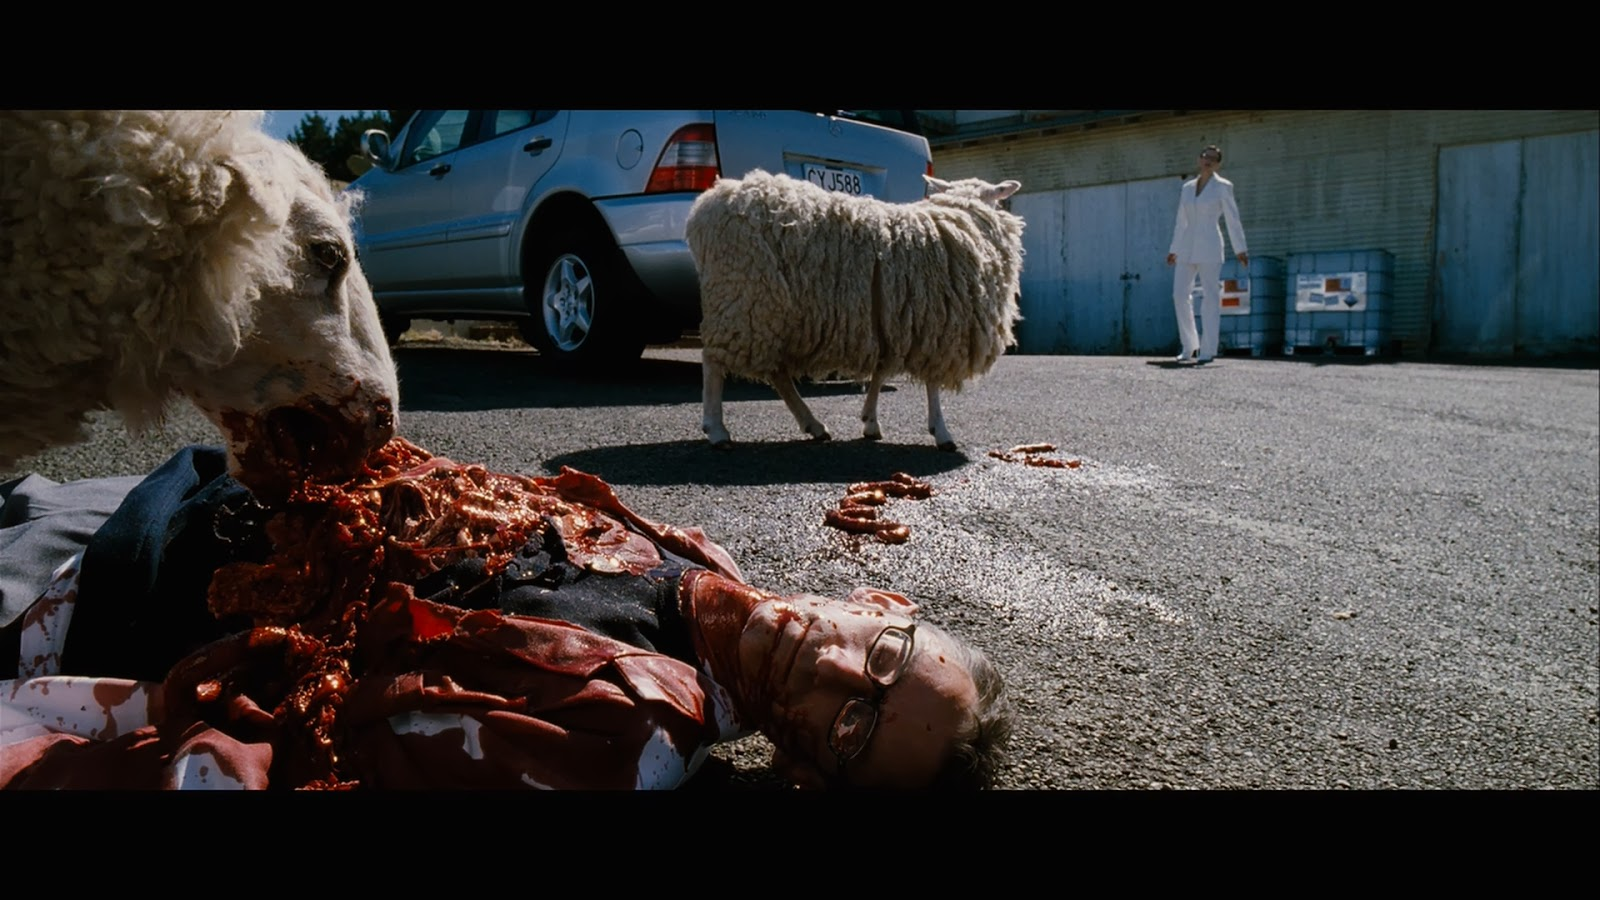 Amazing Black Sheep (2006) Pictures & Backgrounds